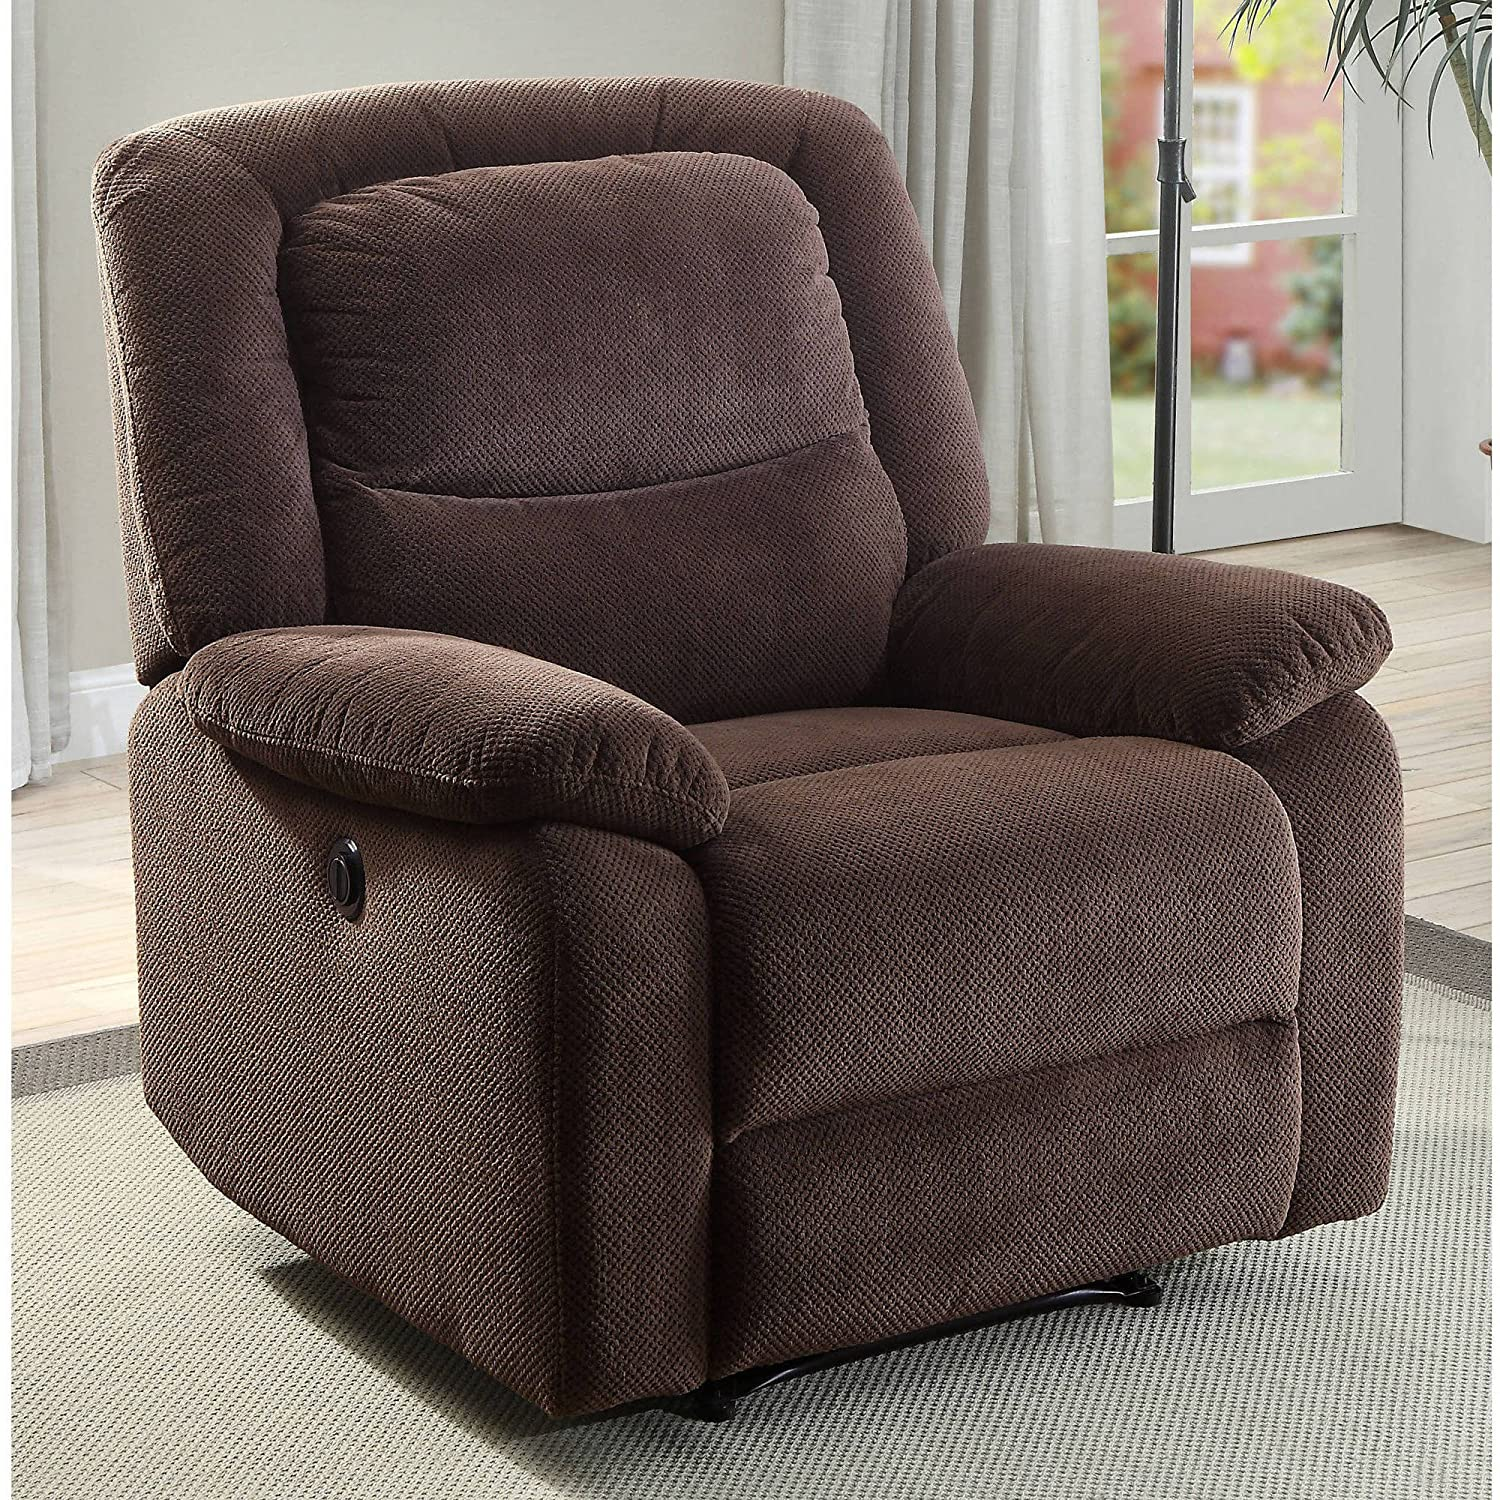 Best Recliners For Elderly Reviews Top 5 For Seniors In